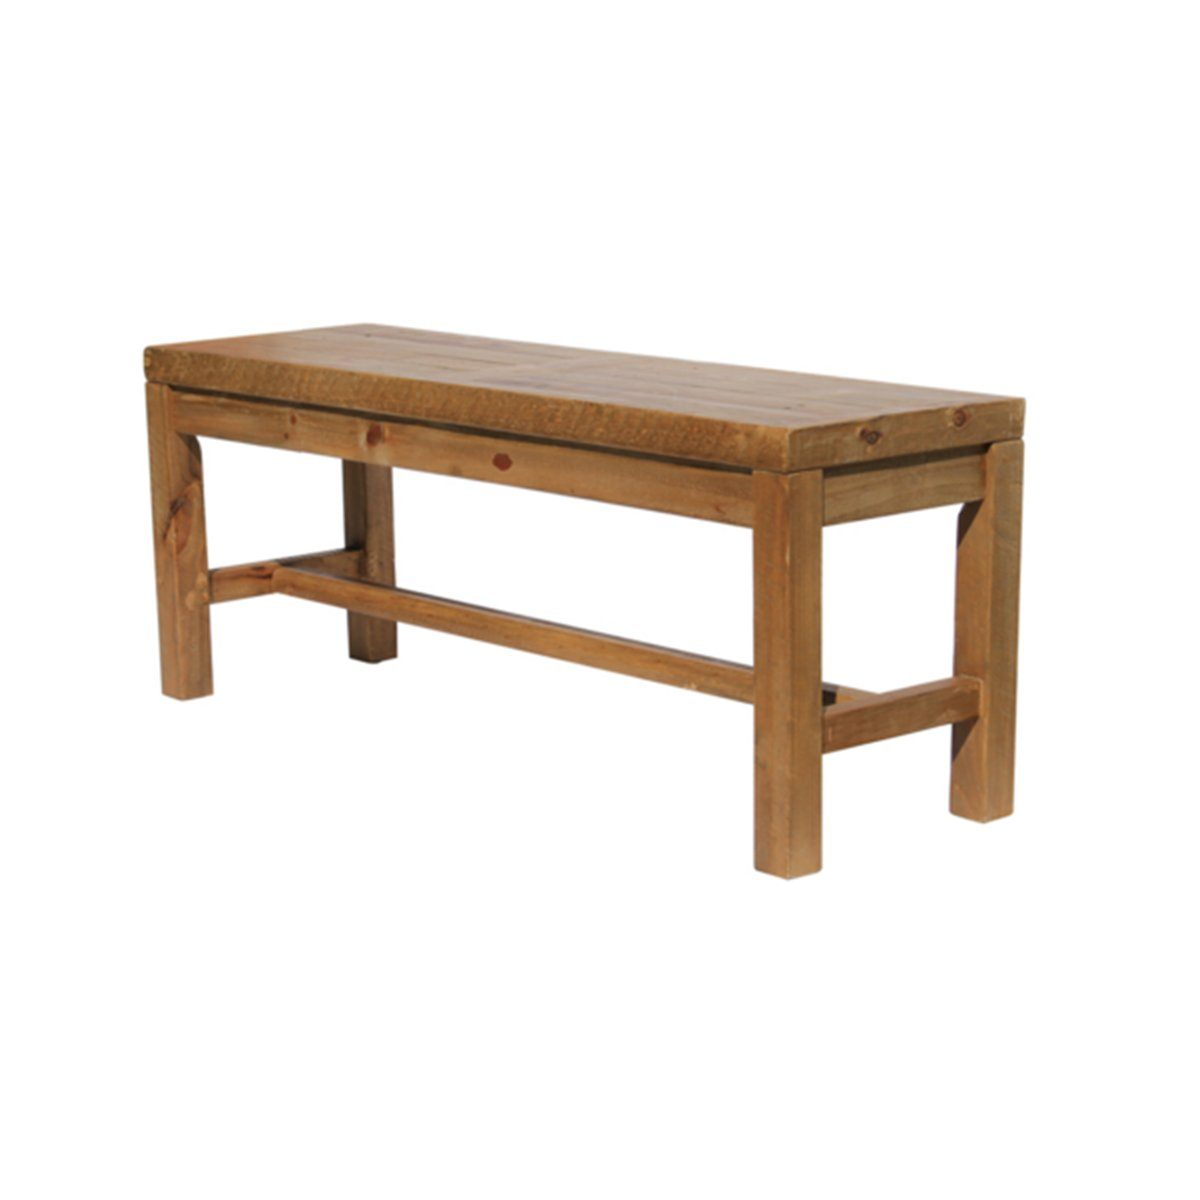 SOLID WOOD Small Bench - Showhome Furniture